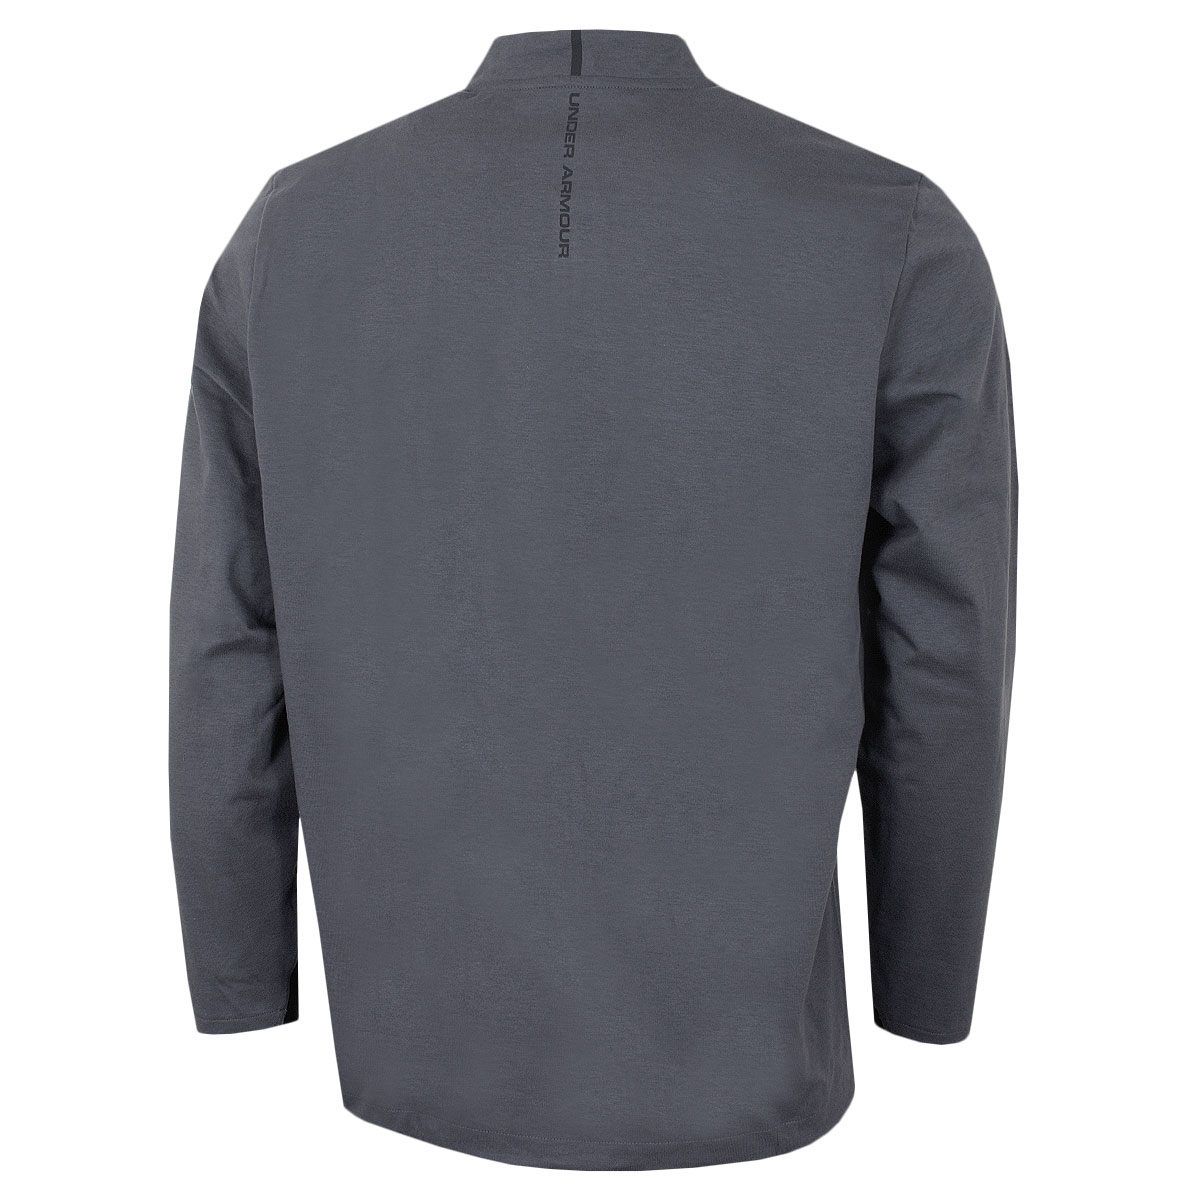 Under-Armour-Mens-UA-Storm-Full-Zip-Water-Repellent-Golf-Jacket-50-OFF-RRP thumbnail 7